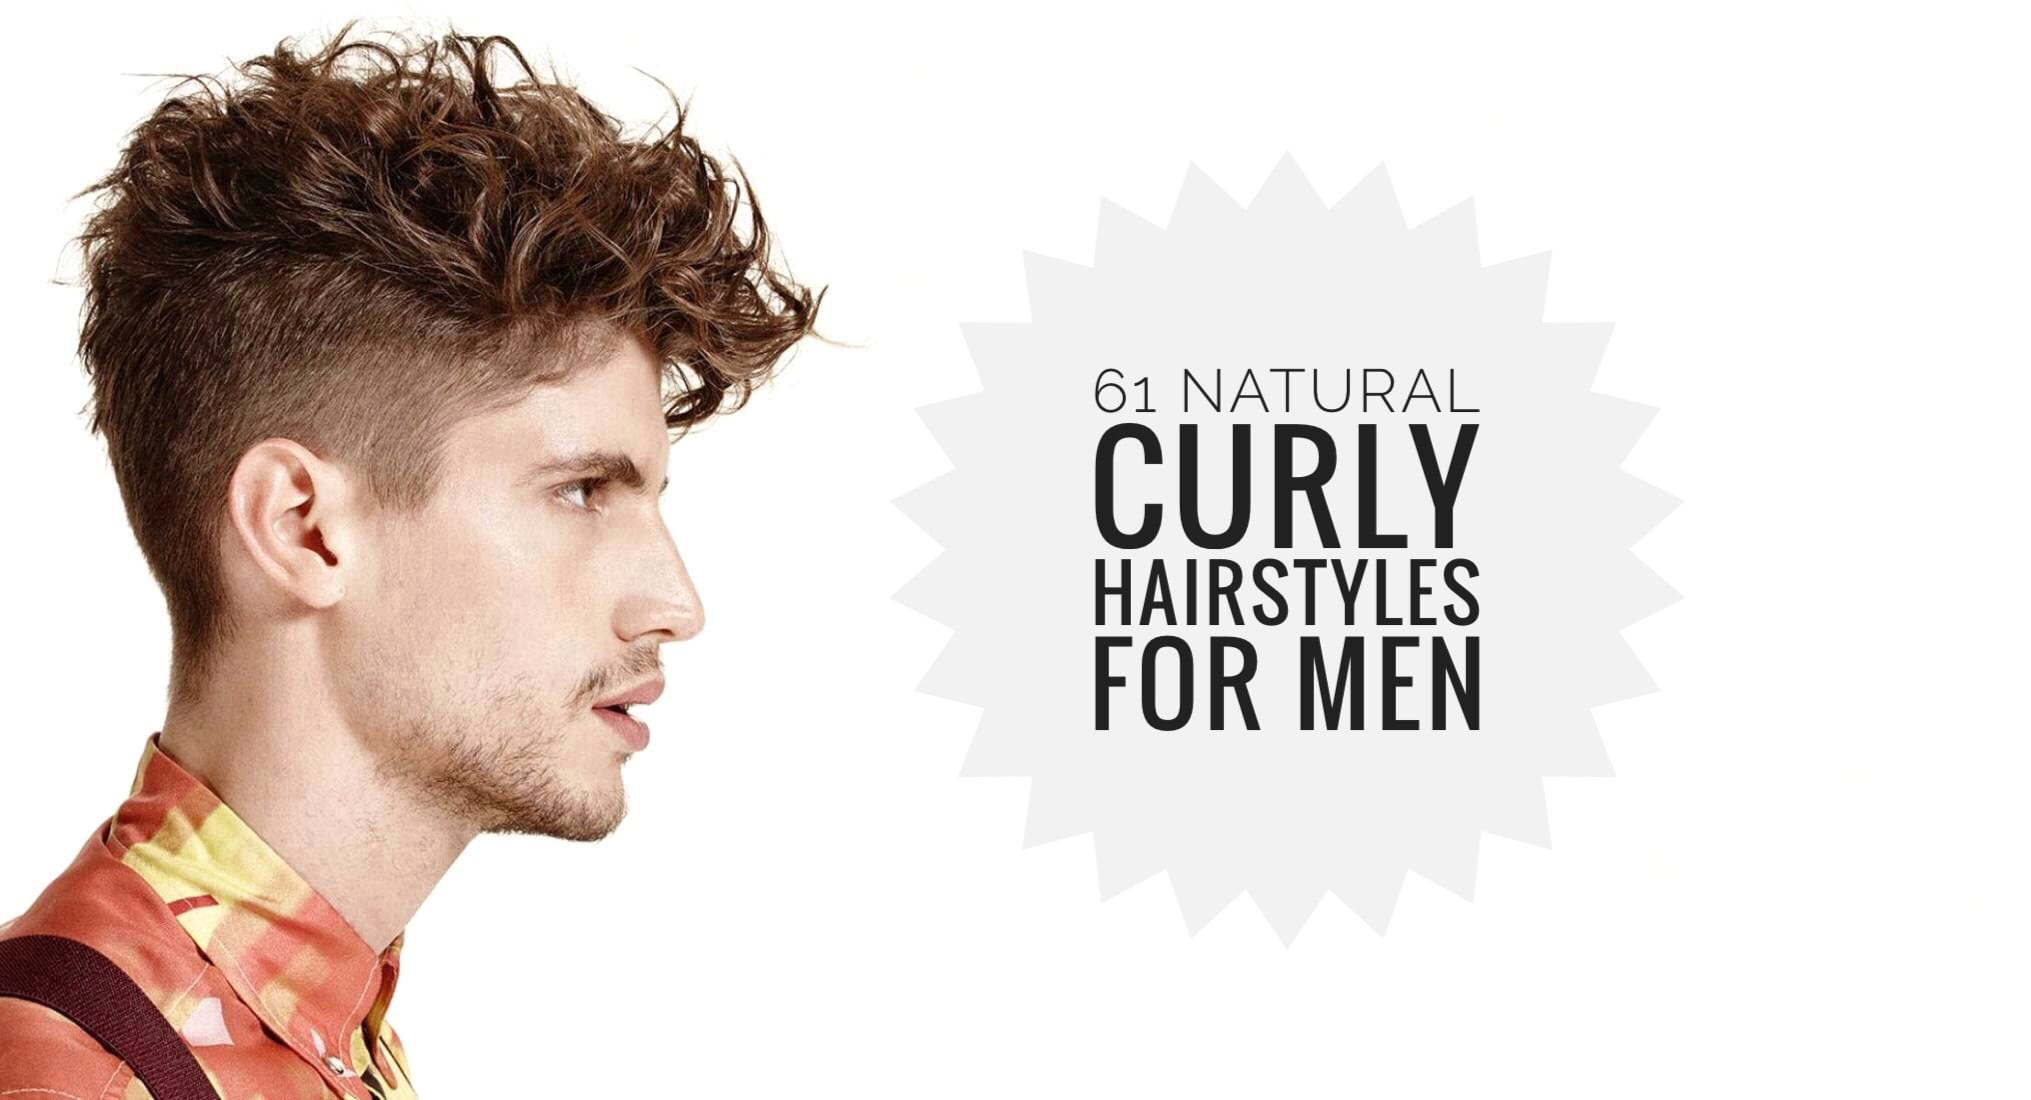 60 Curly Hairstyles For Men To Style Those Curls Men Hairstyles